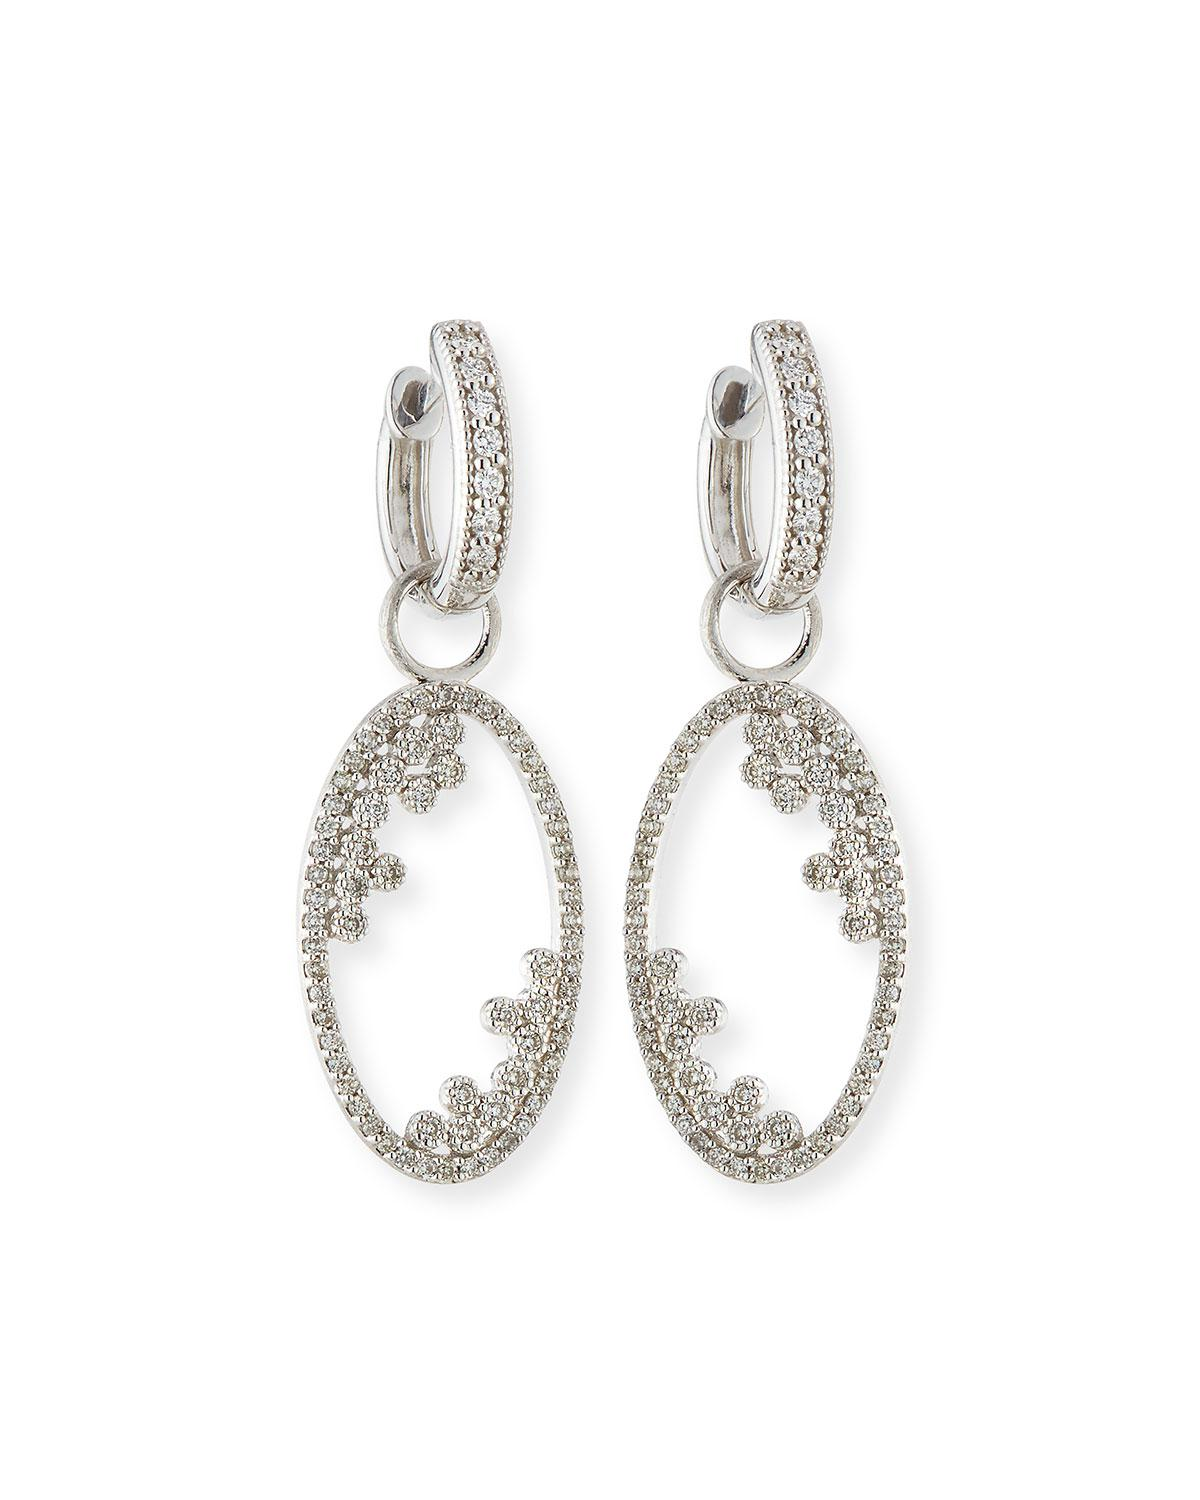 Jude Frances 18k Provence Oval Doublet Earring Charms UZH2Qplv